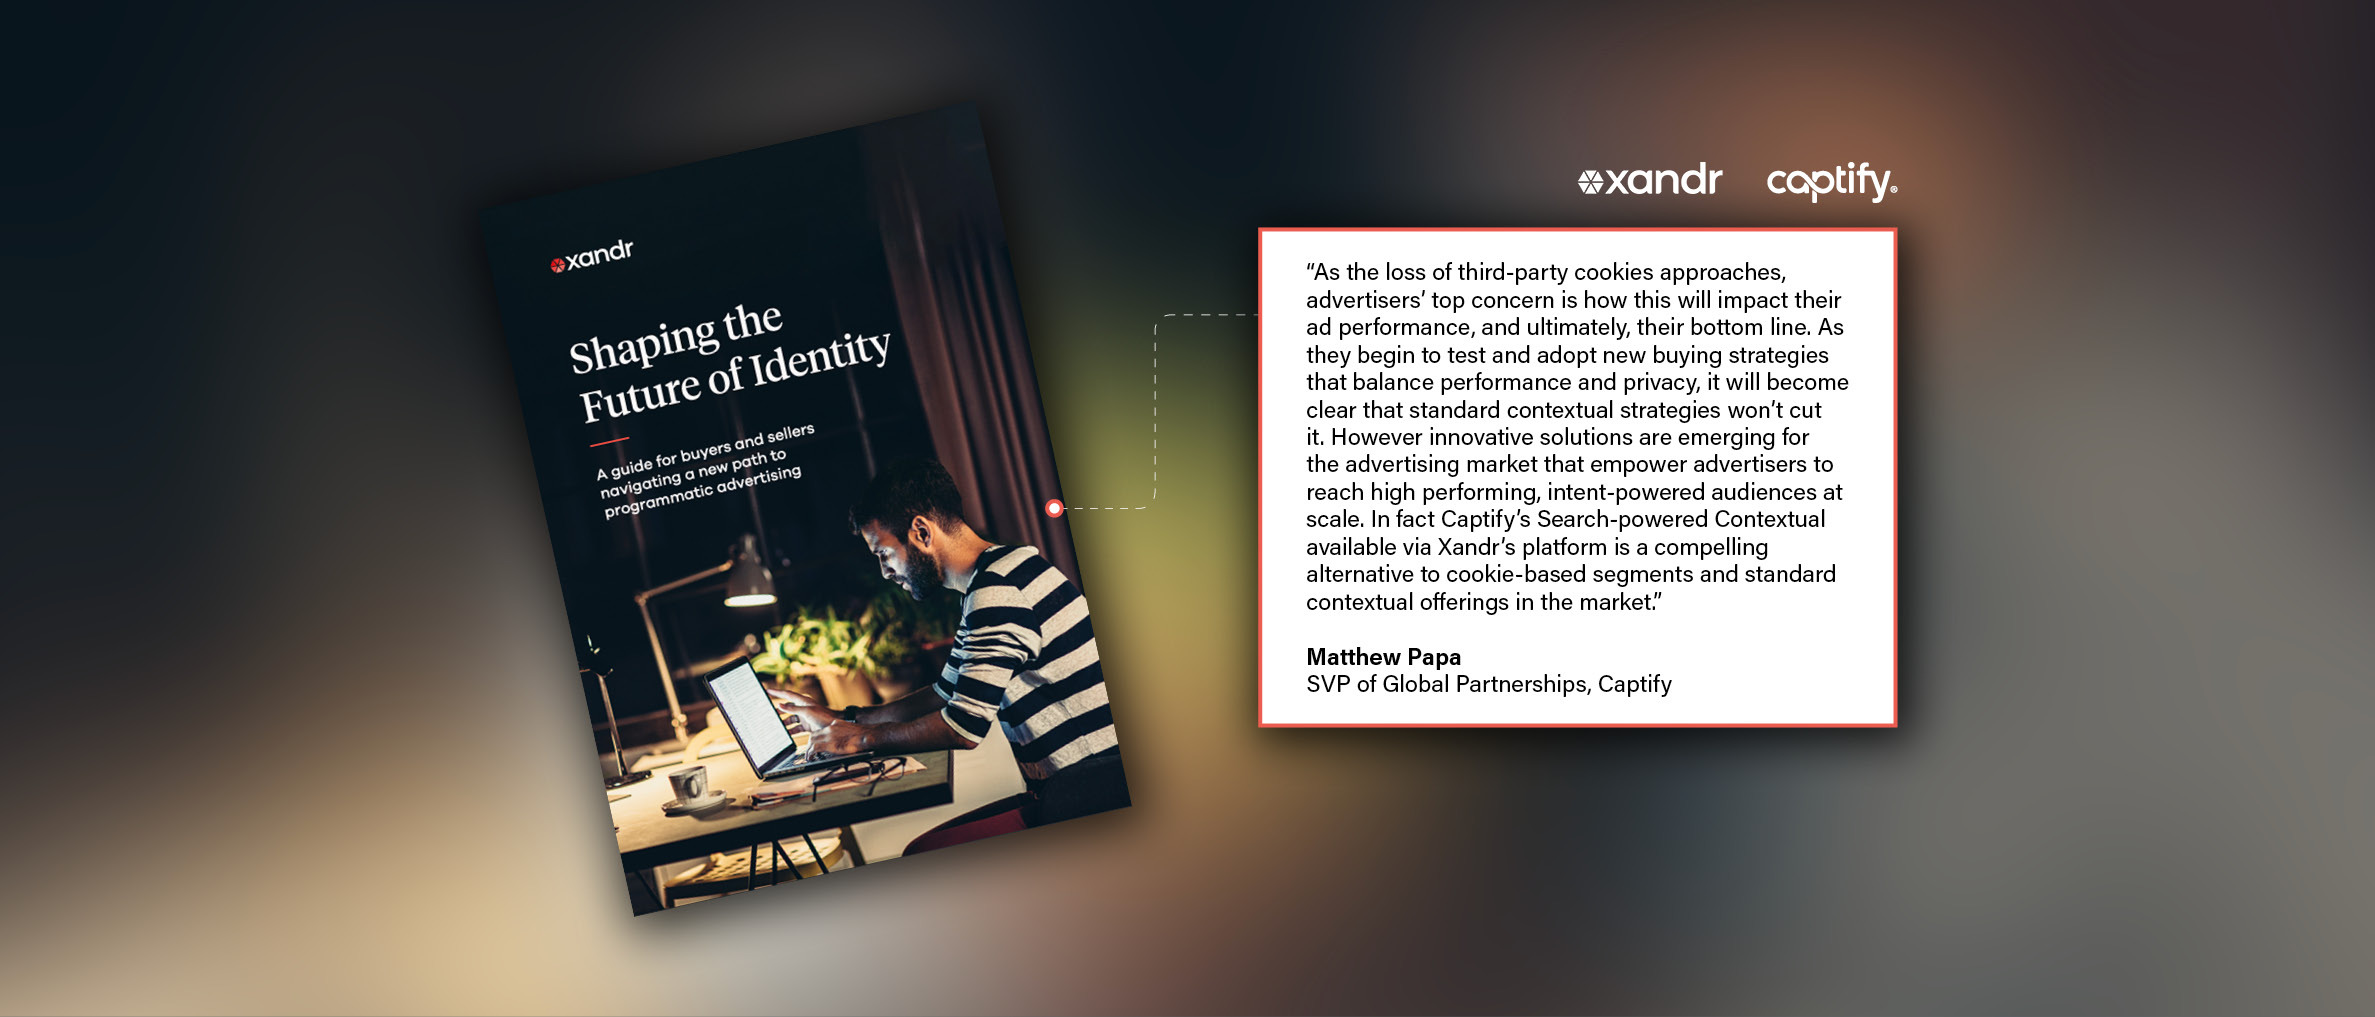 In Xandr's 'Shaping The Future of Identity' Guide, Matthew Papa Shares How Captify Is Innovating For A Cookieless Future With Search-Powered Contextual